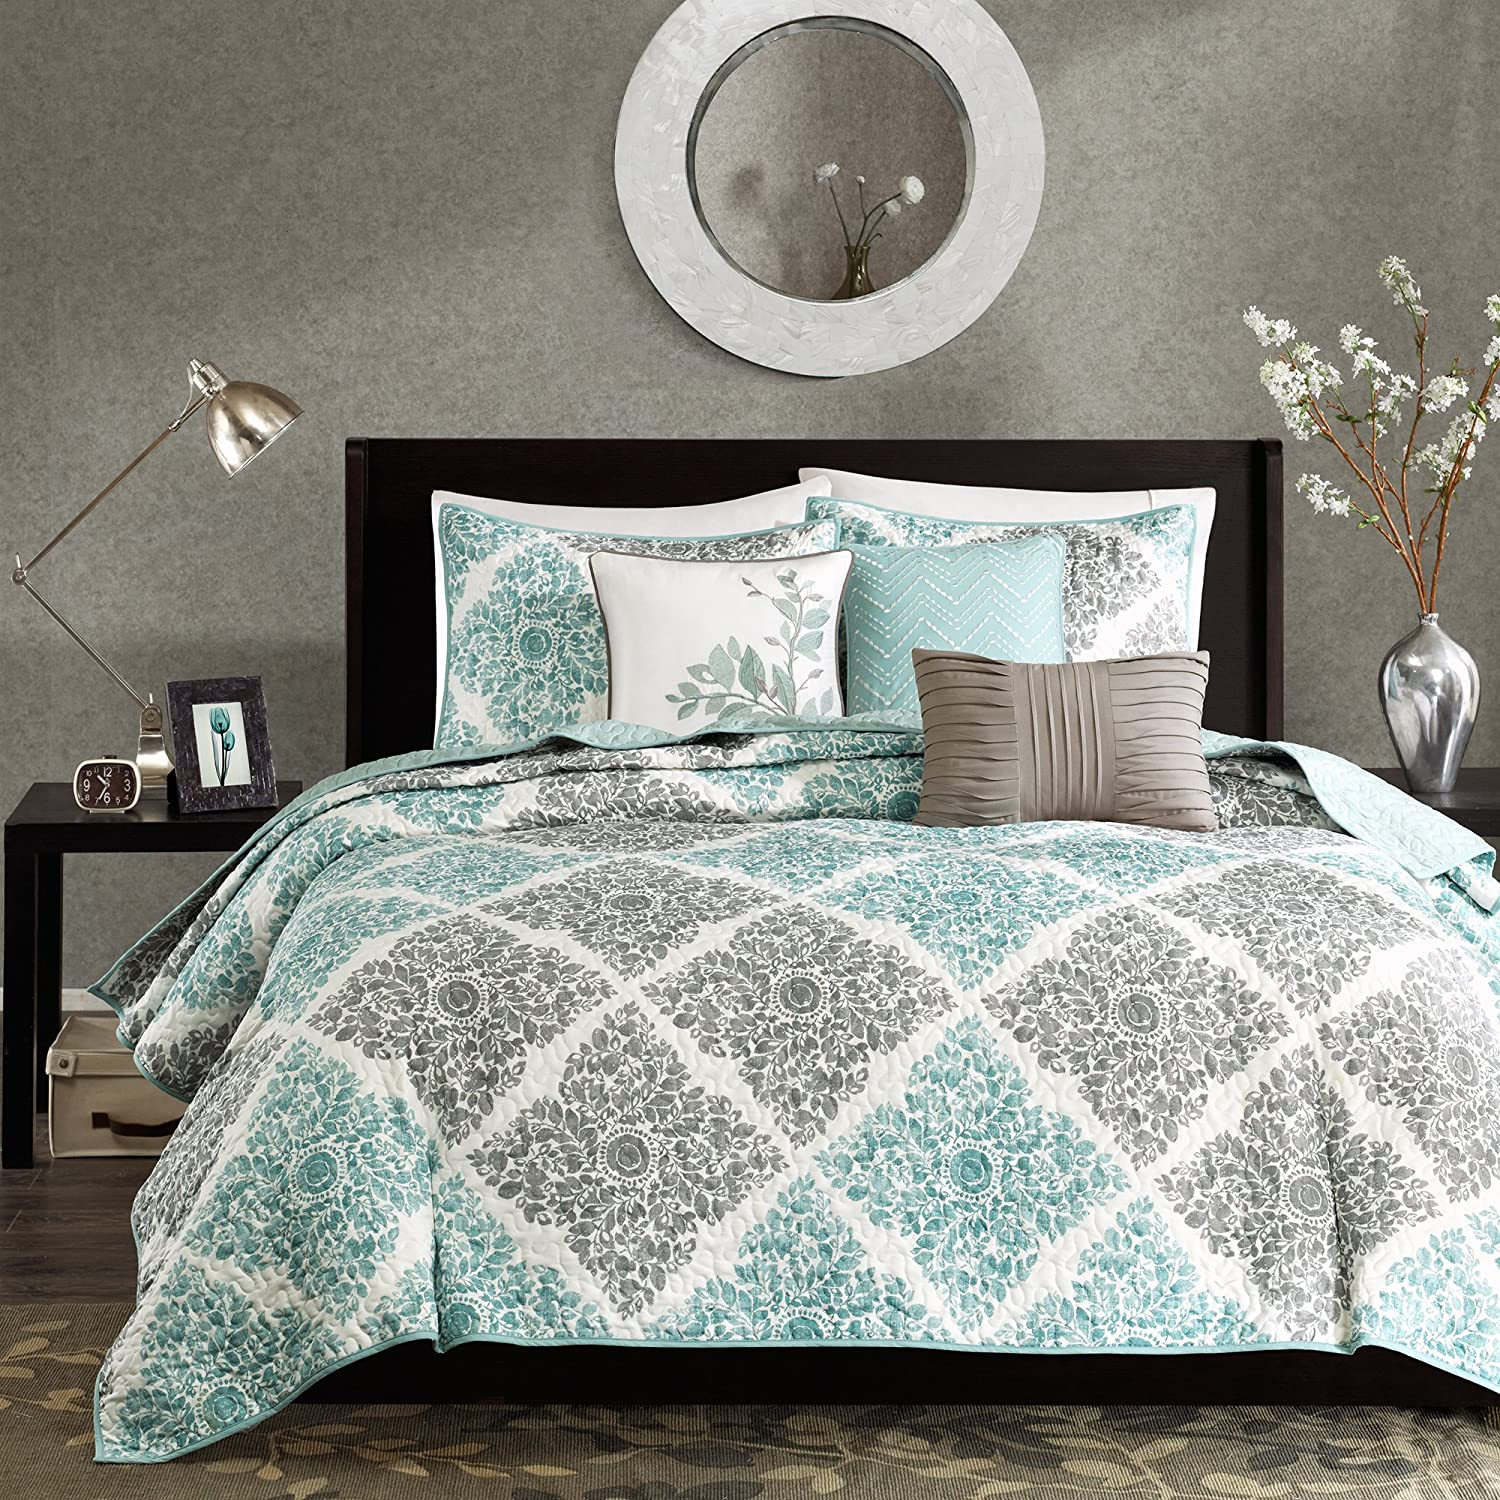 Madison Park Claire King/Cal King Size Quilt Bedding Set - Aqua, Grey, Leaf Geometric – 6 Piece Bedding Quilt Coverlets – Ultra Soft Microfiber Bed Quilts